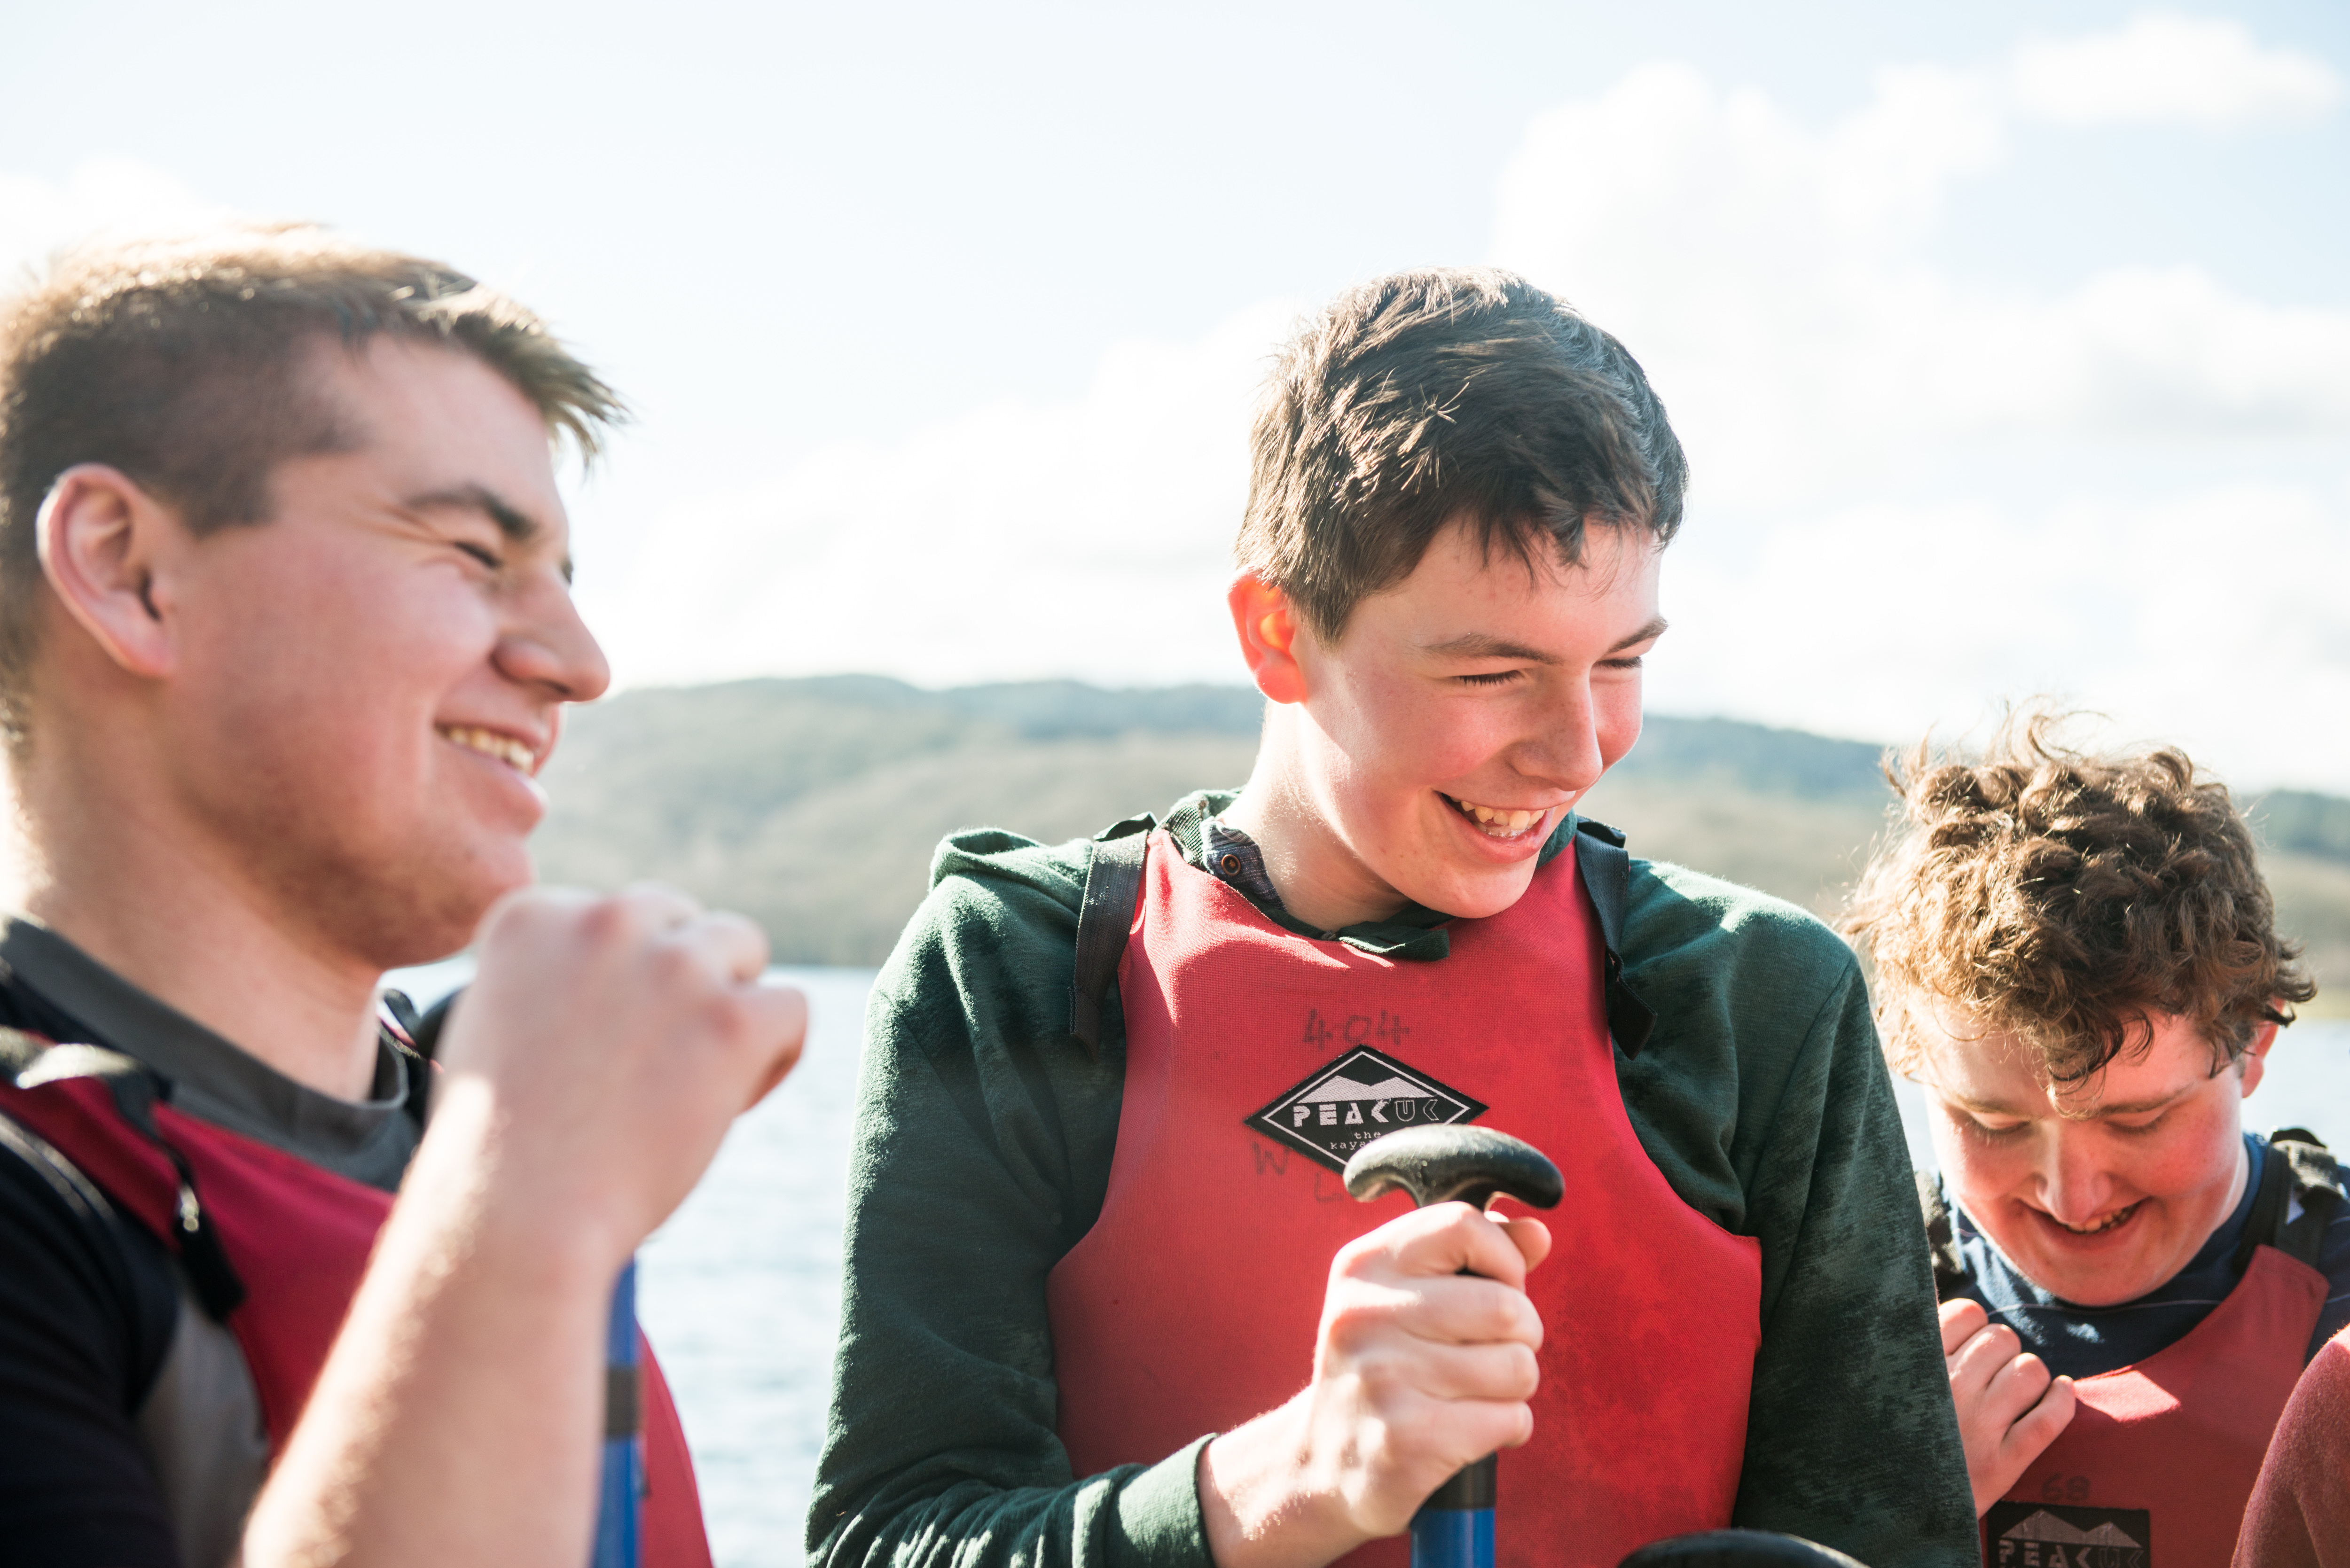 scouts-in-life-jackets-chatting-jpg